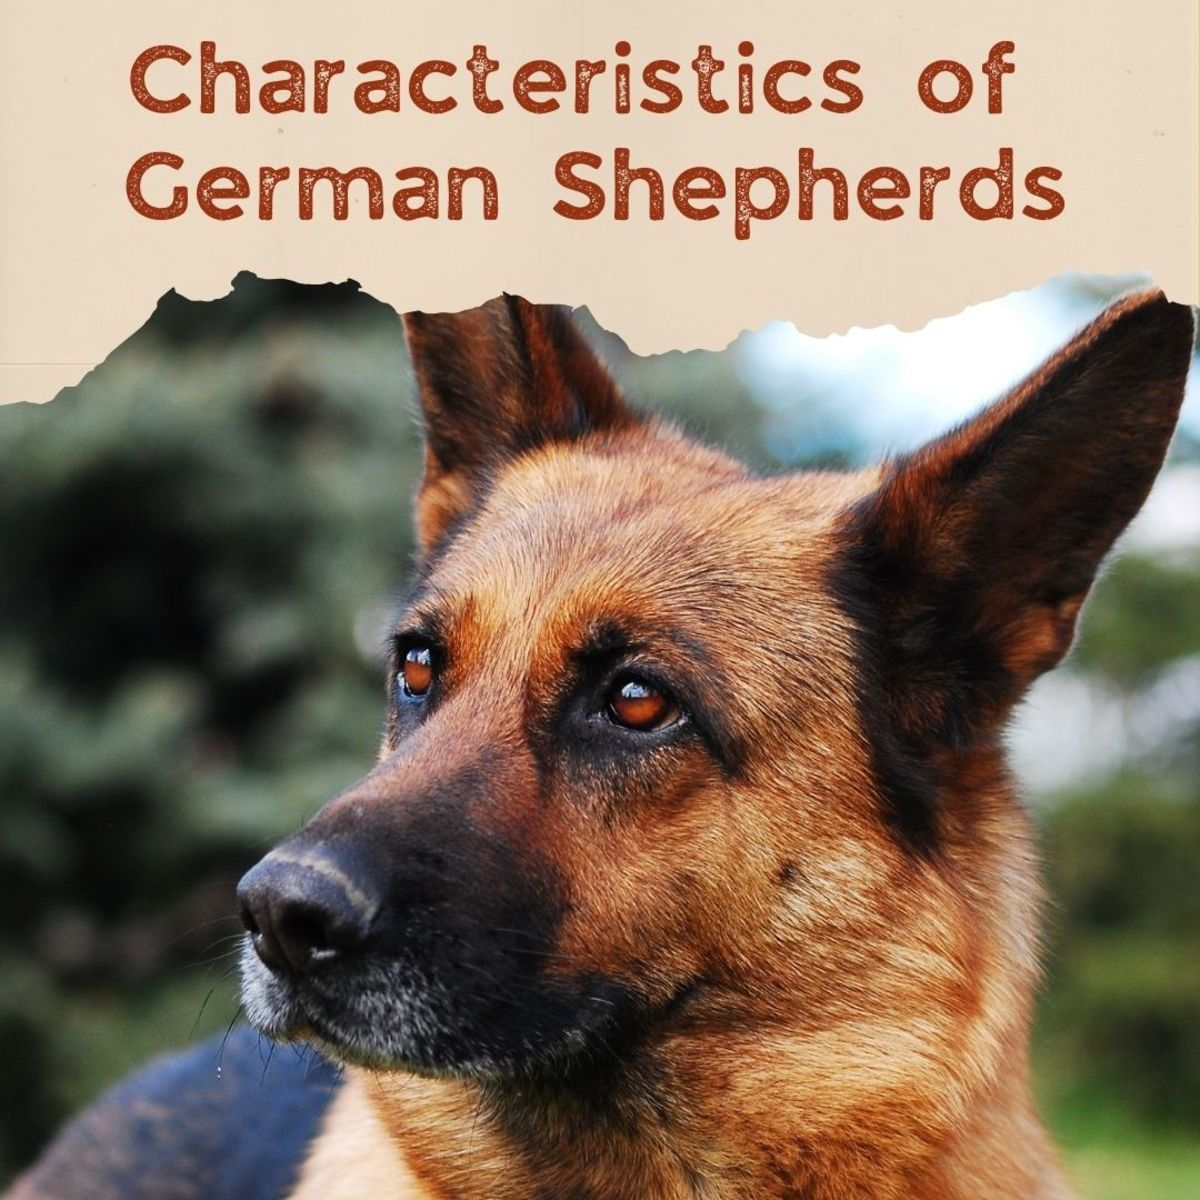 What are the characteristics of the German Shepherd breed?